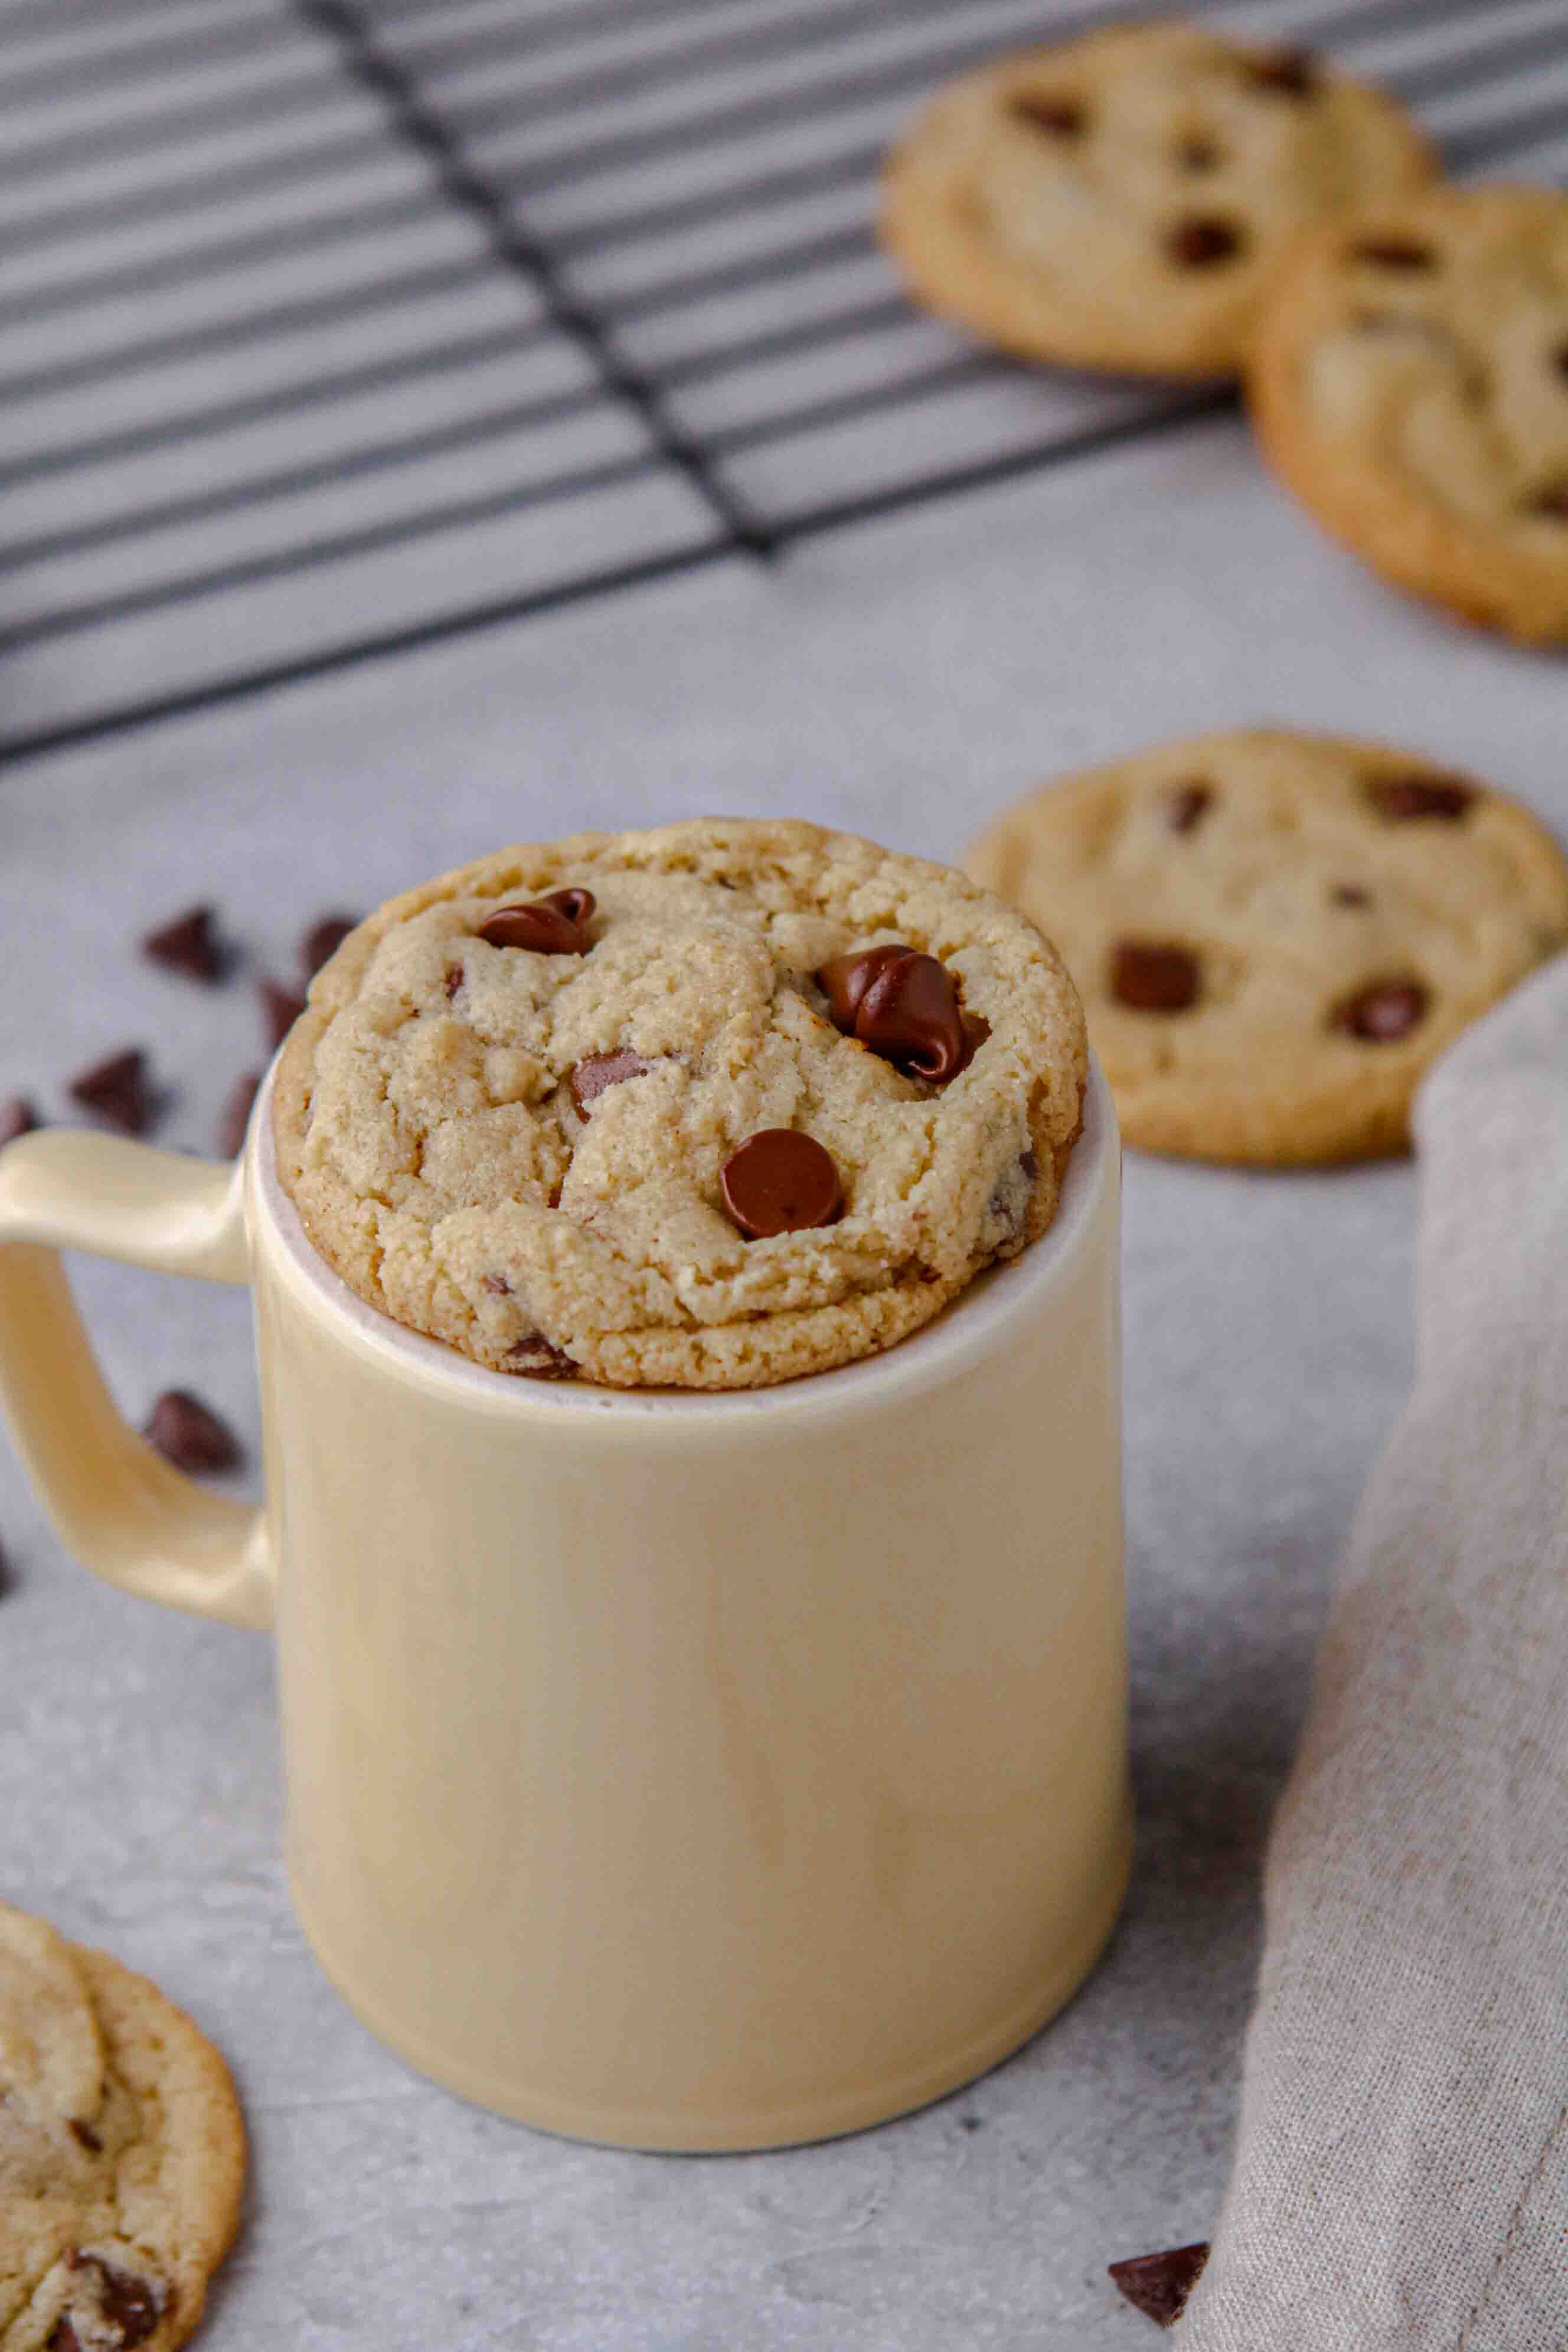 Soft and chewy almond flour chocolate chip cookies